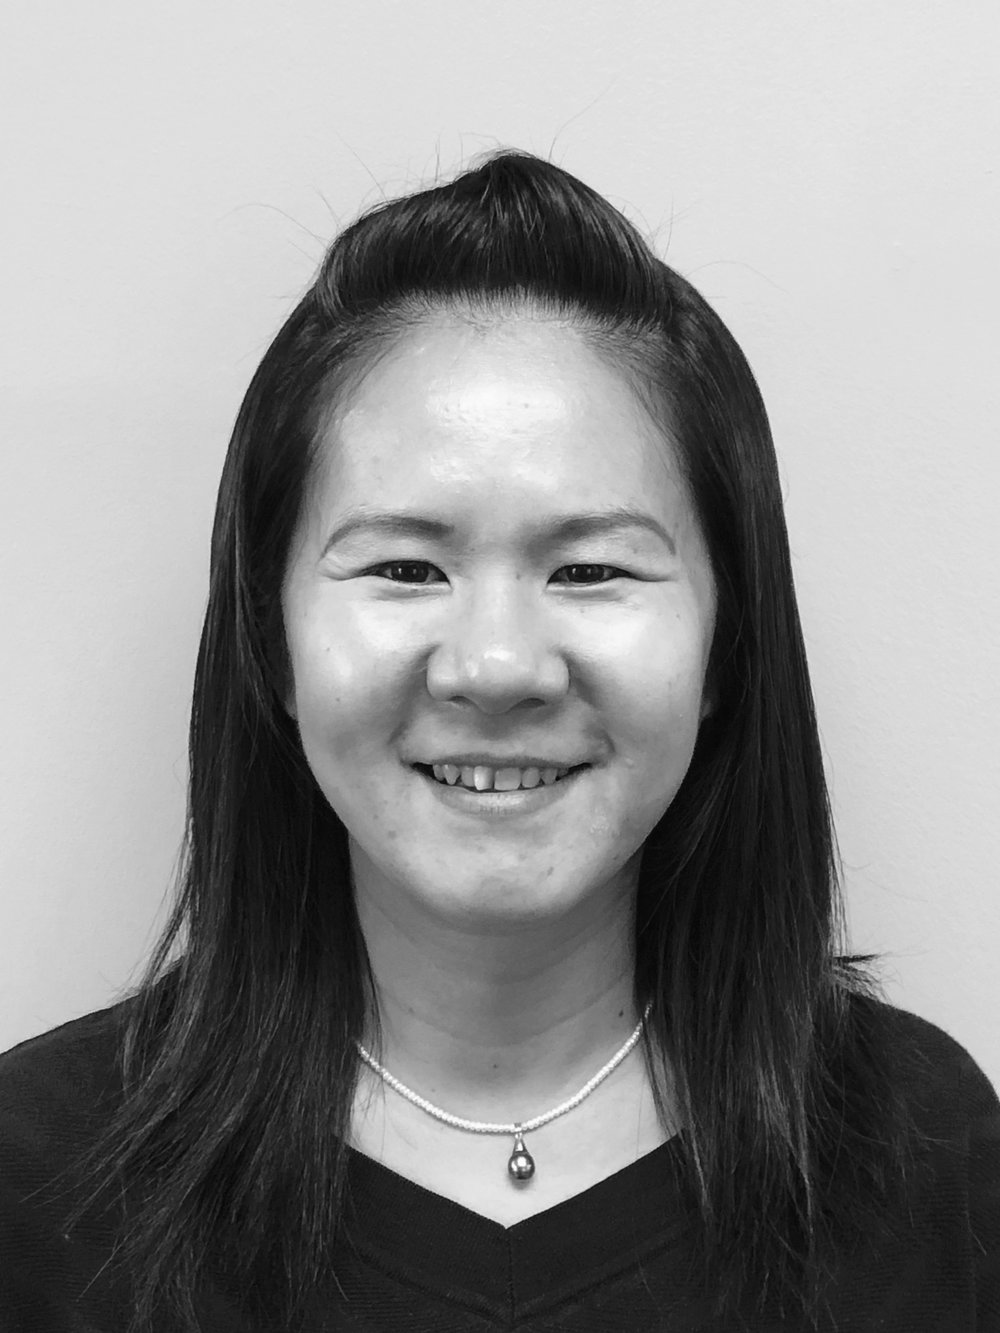 Sayaka Laub   Sayaka is the newest member of the PREMA Team.  She has experience working for  CO local government as a sales tax technician.  Sayaka's desire to educate taxpayers and genuinely help them is what makes her such an asset to PREMA and to our clients.